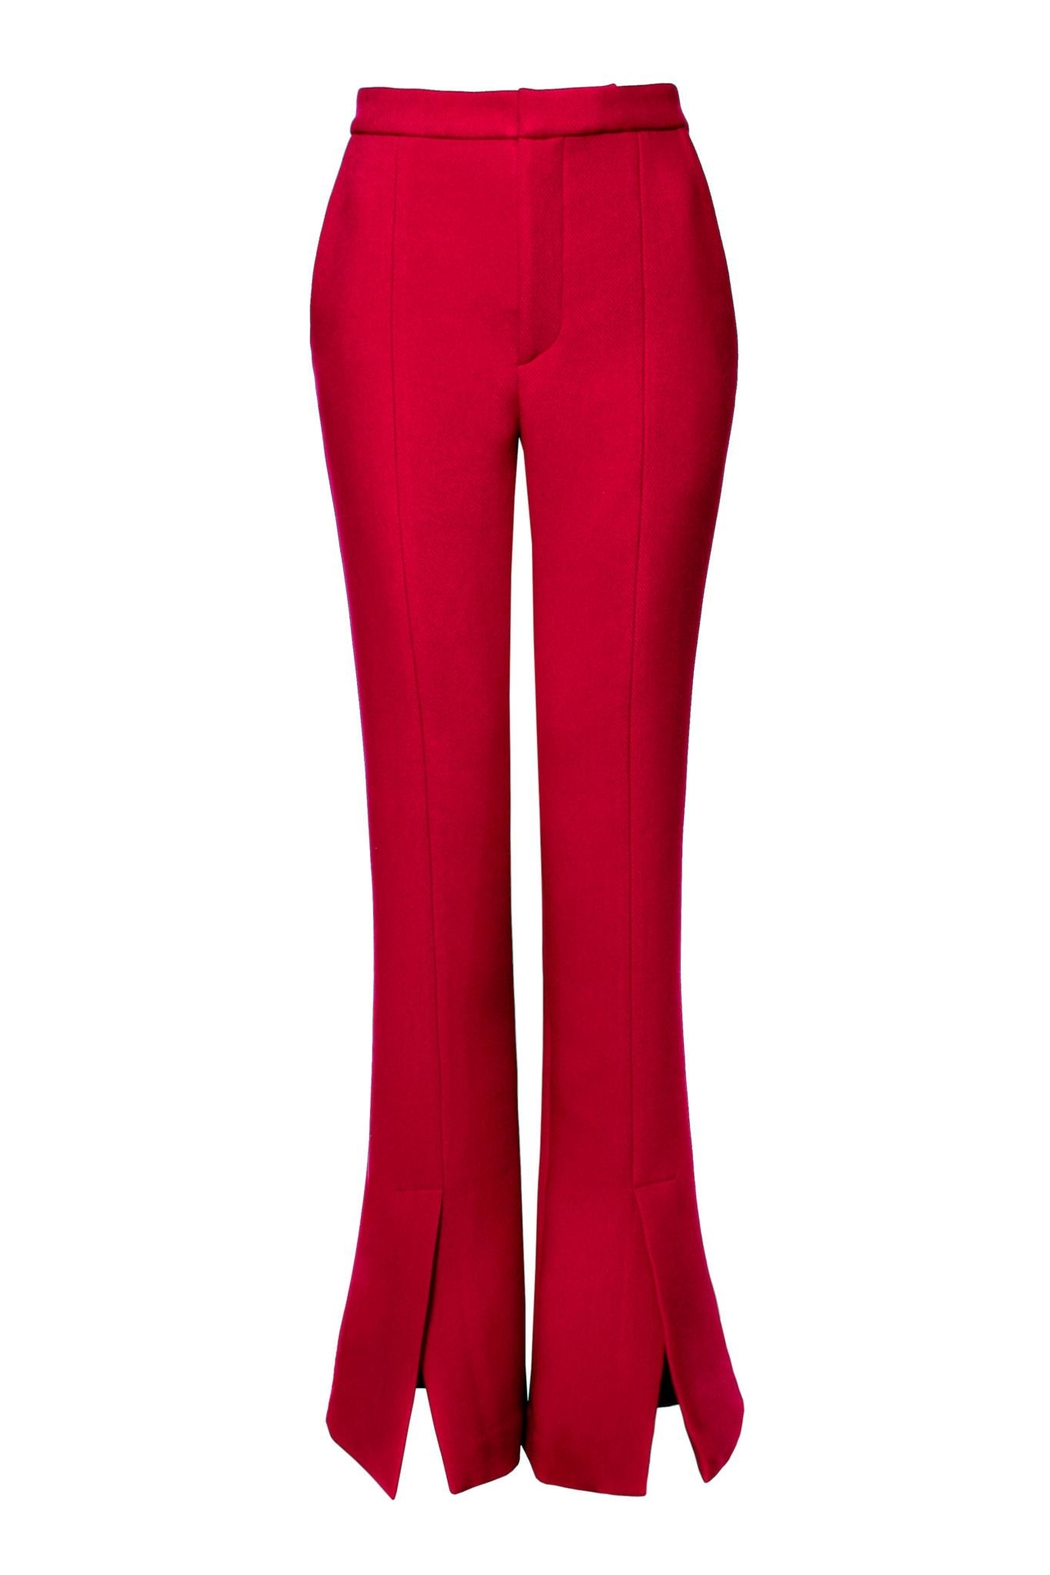 AGGI Pants Monica Lipstick Red - Height 165 - Front Full Image